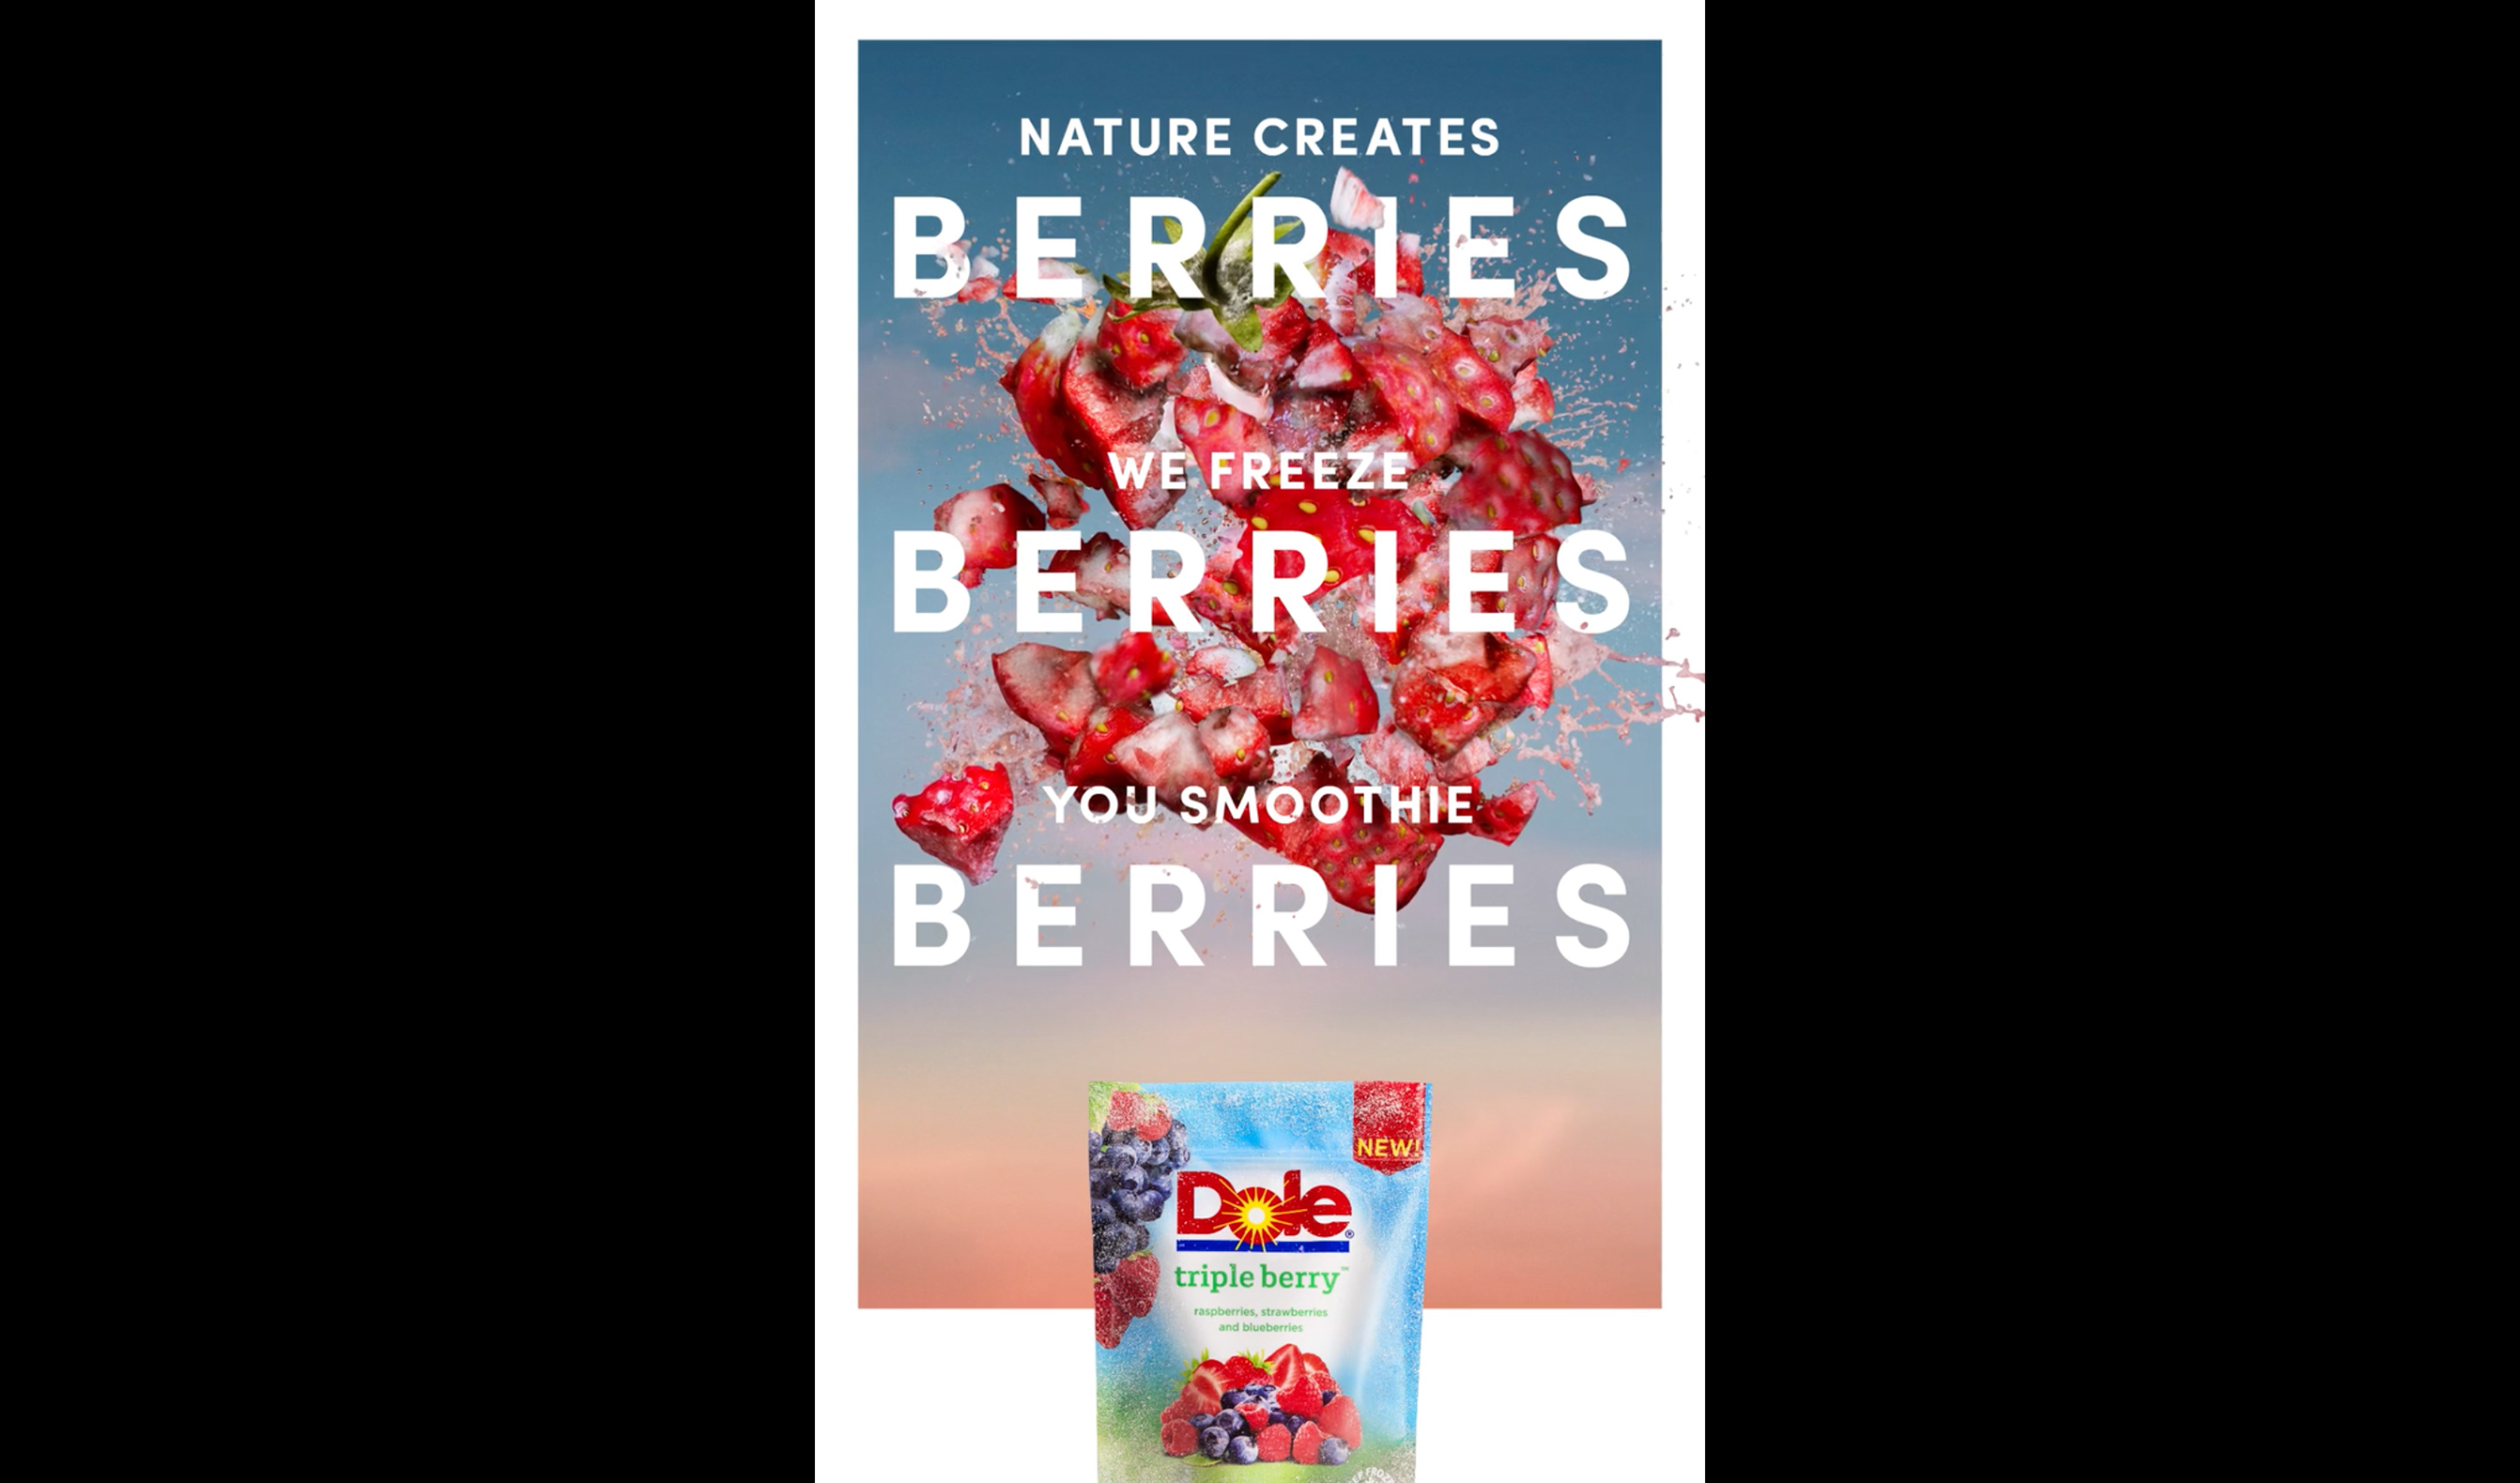 DOLE – Tripple Berries